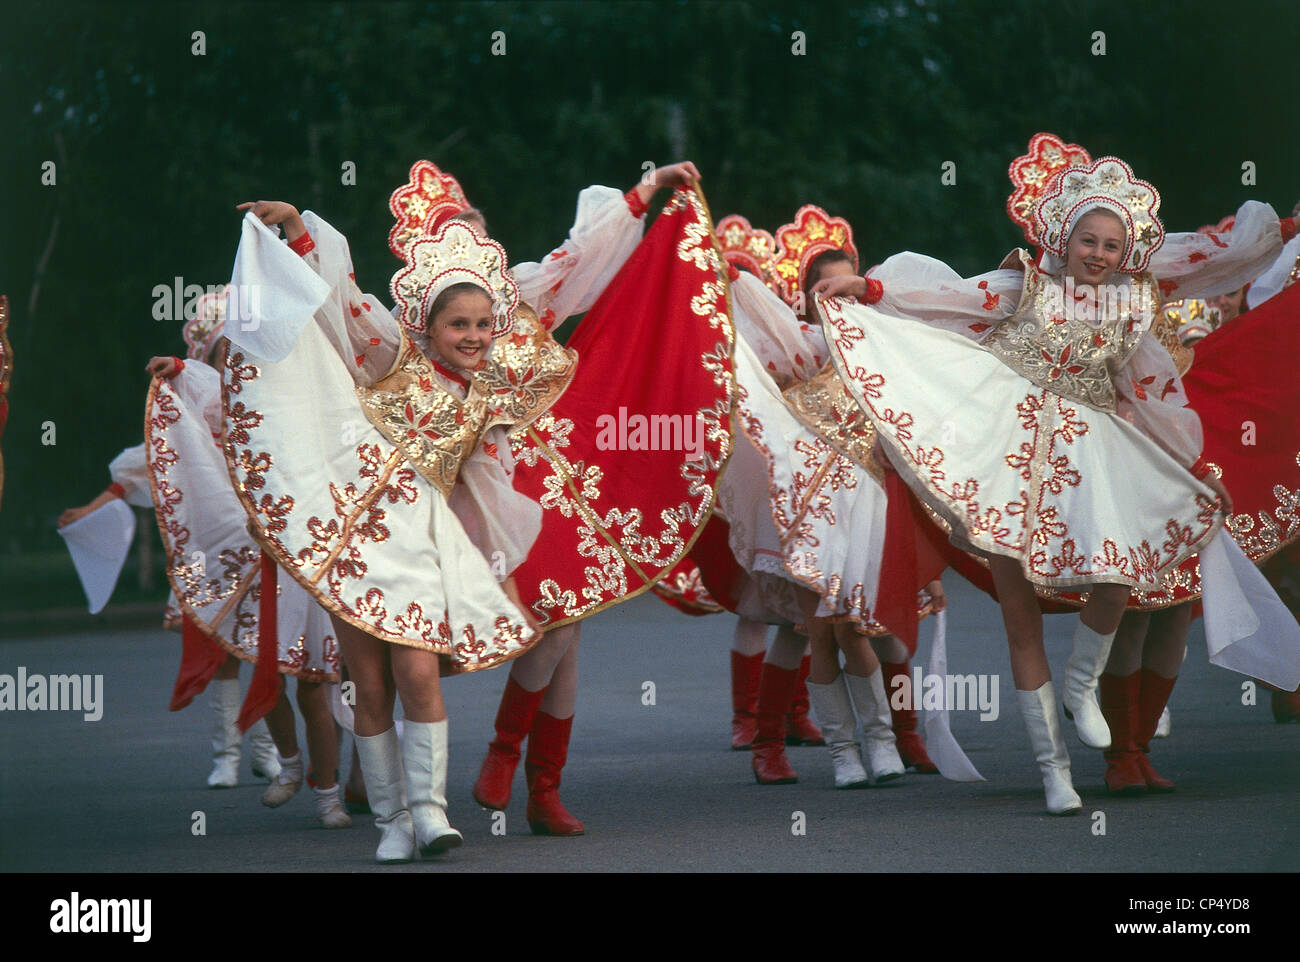 78d95448b67 Traditional Costume Russia Stock Photos   Traditional Costume Russia ...